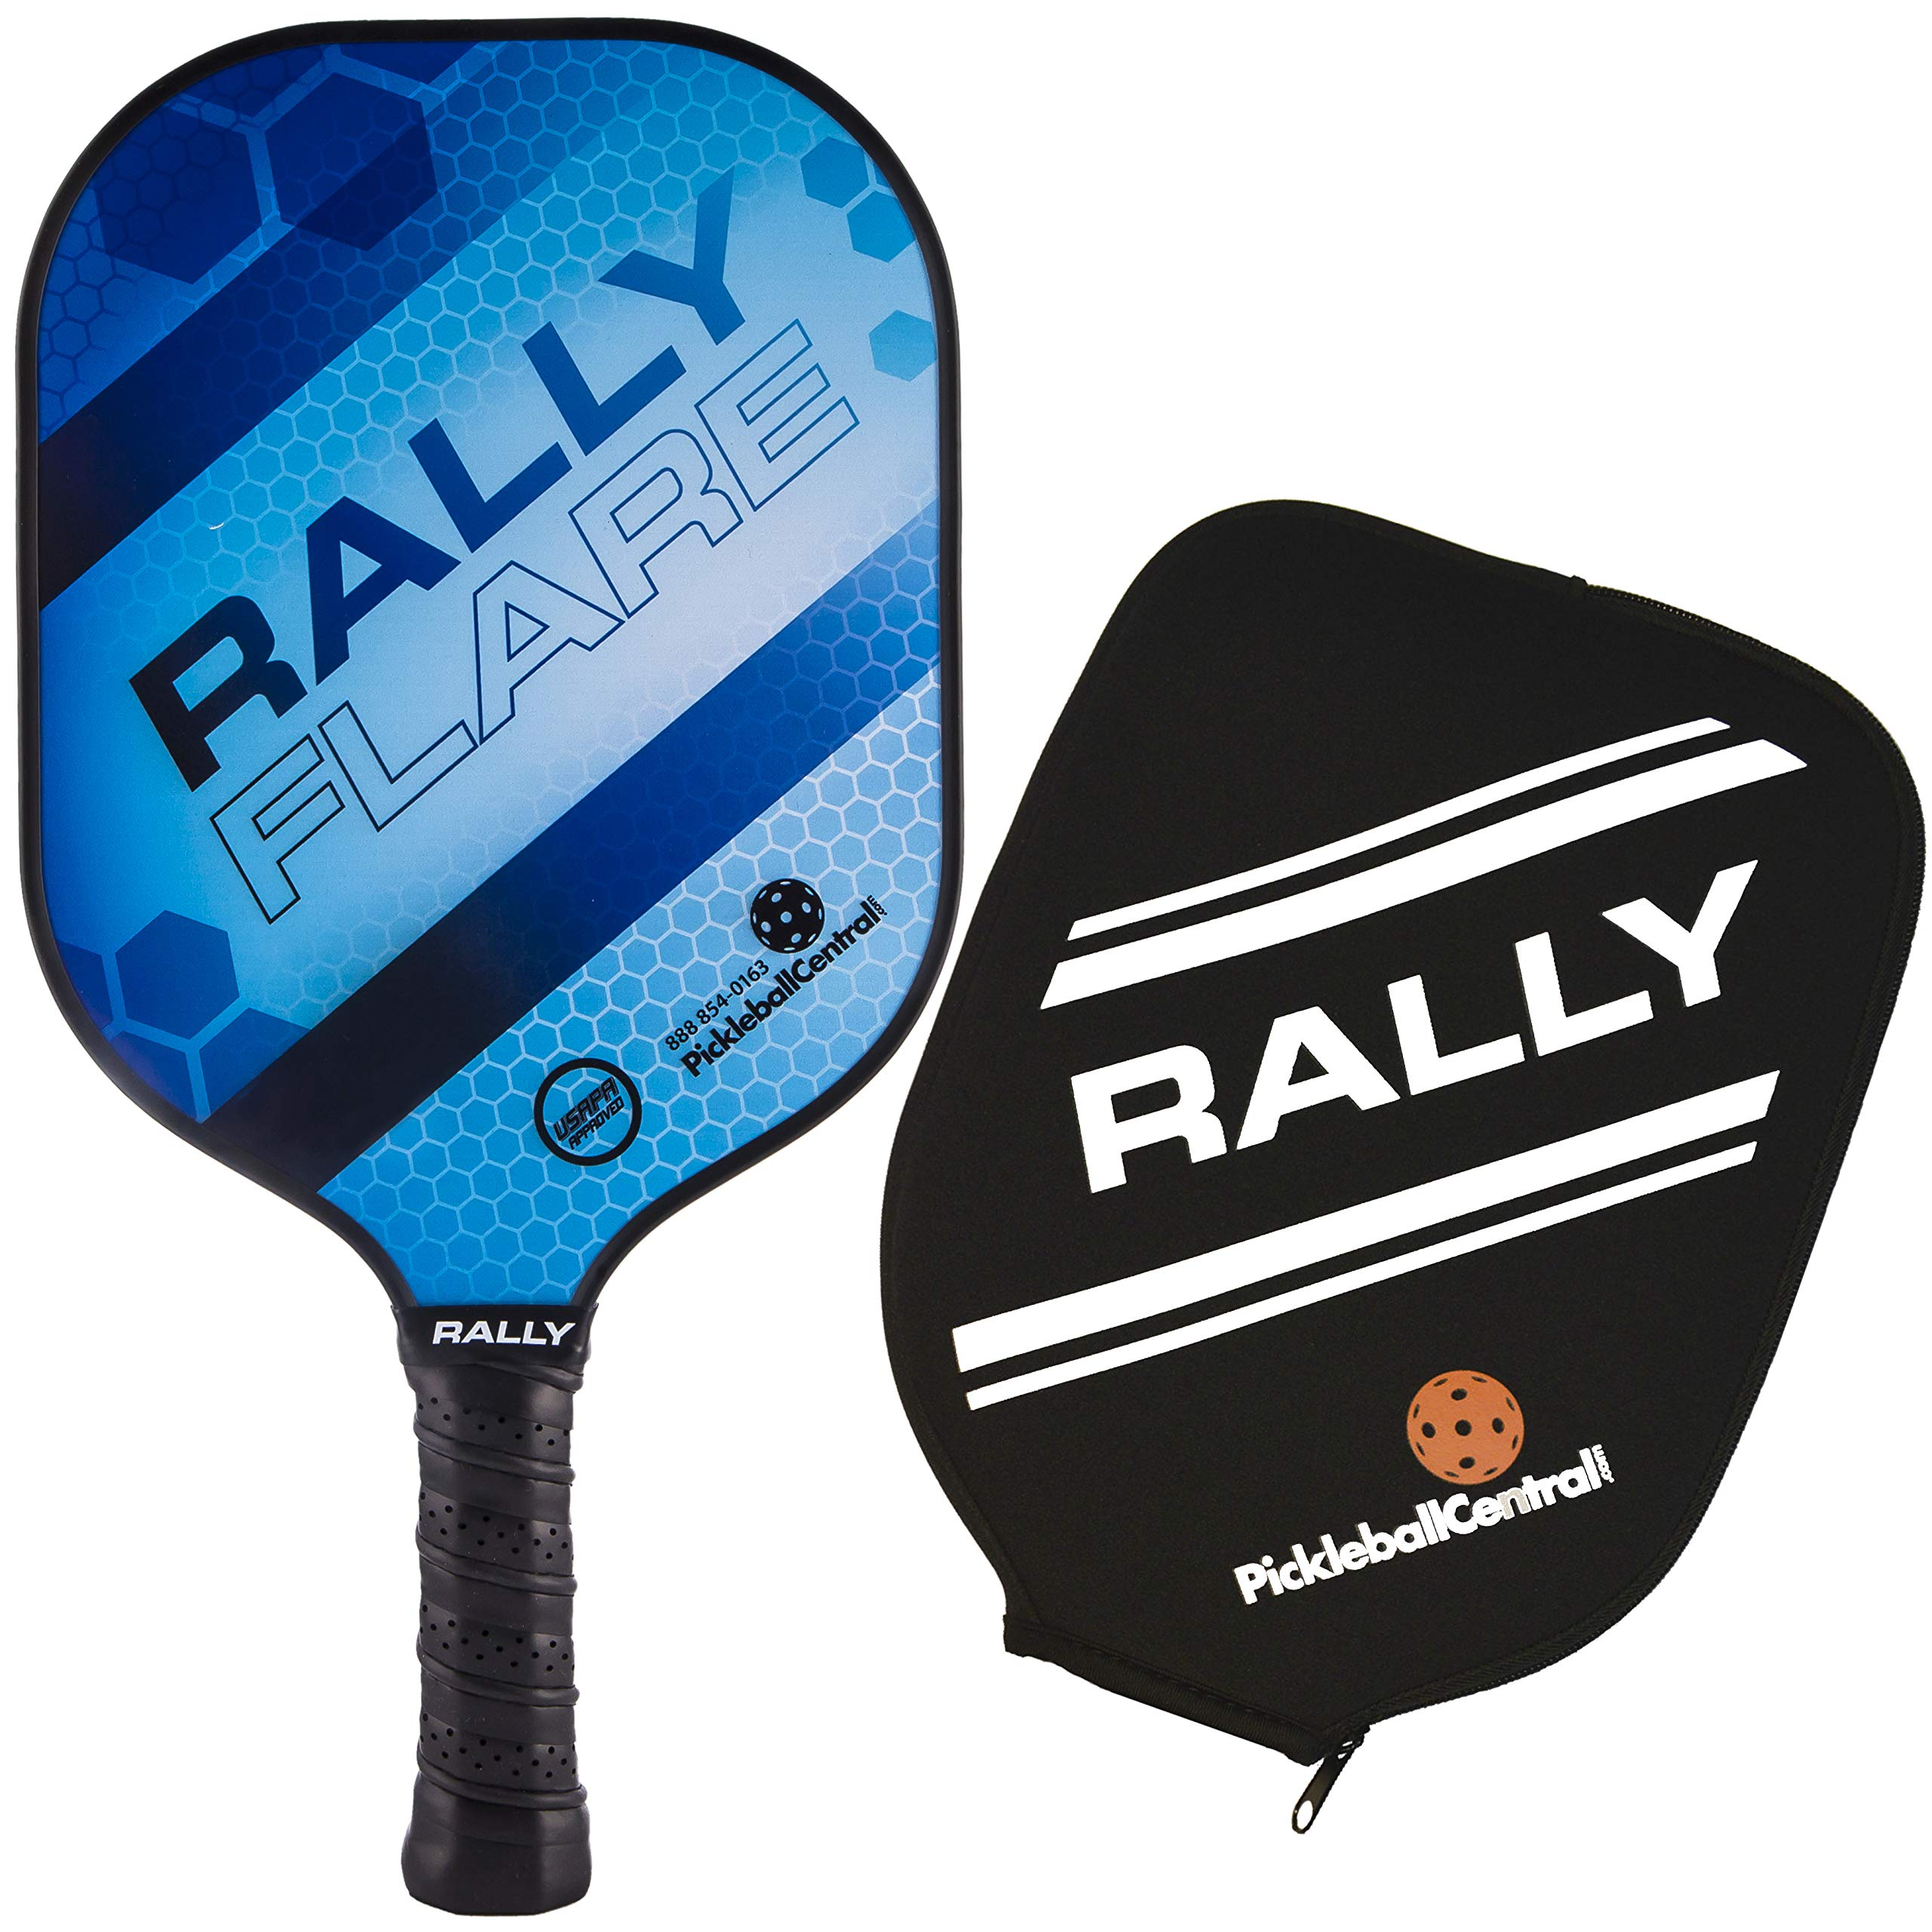 Rally Flare Graphite Pickleball Paddle - Blue | Polymer Honeycomb Core, Graphite Face | Lightweight | Paddle Cover Included in Bundle | USAPA Approved by PickleballCentral